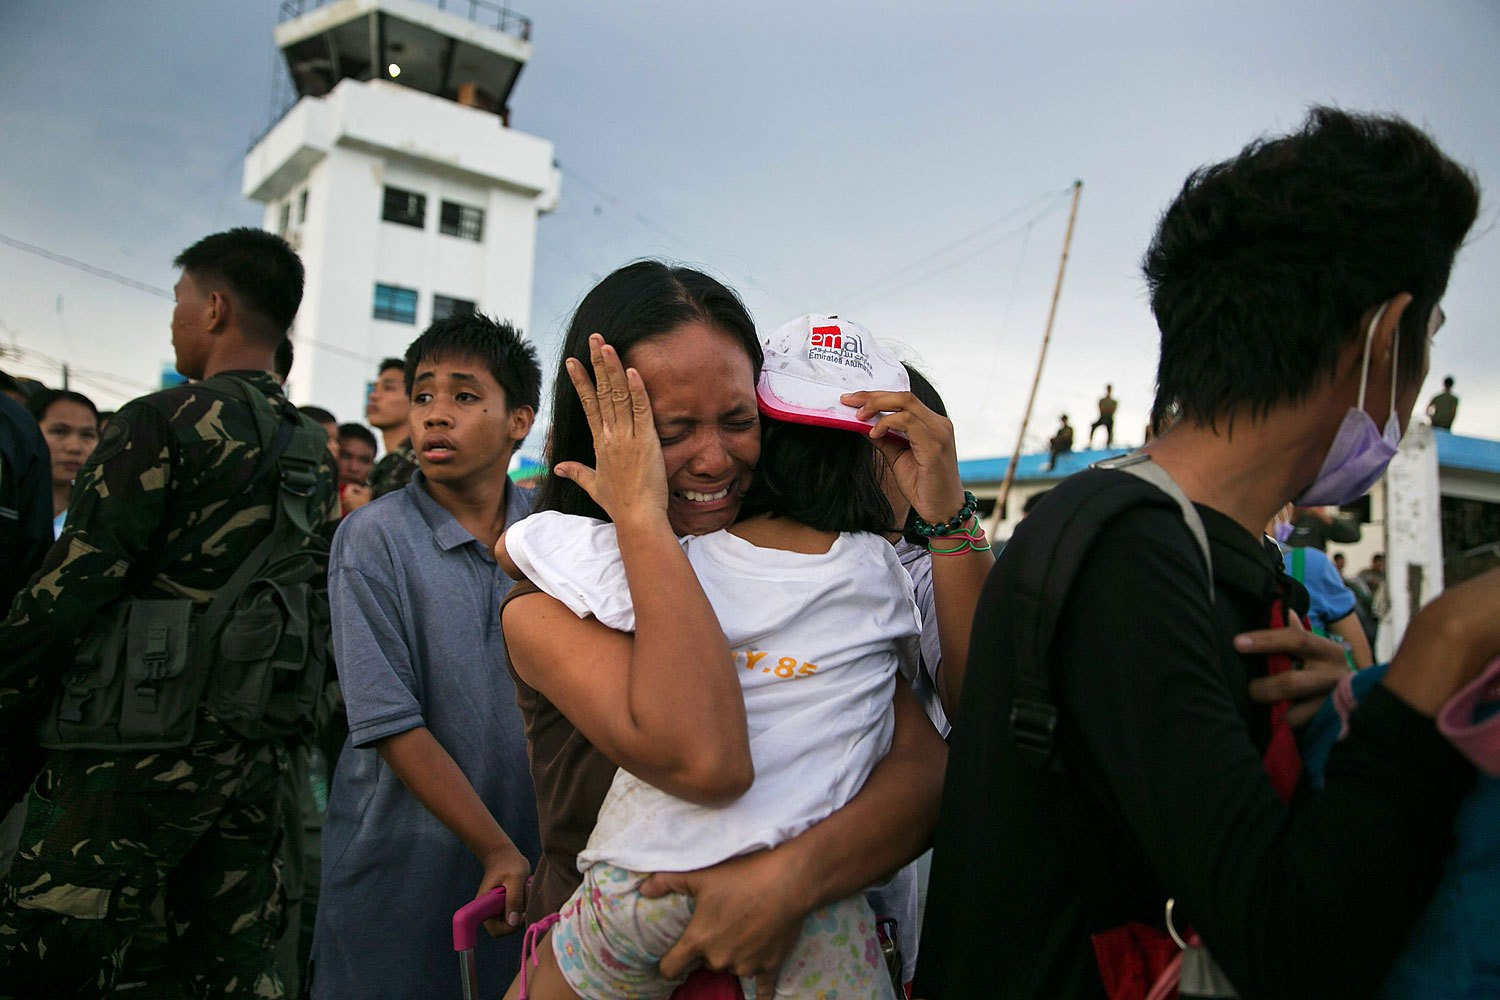 A woman carrying a child cries as they and other survivors of Supertyphoon Haiyan wait to board an aircraft during an evacuation in the Philippine town of Tacloban on Nov. 12, 2013